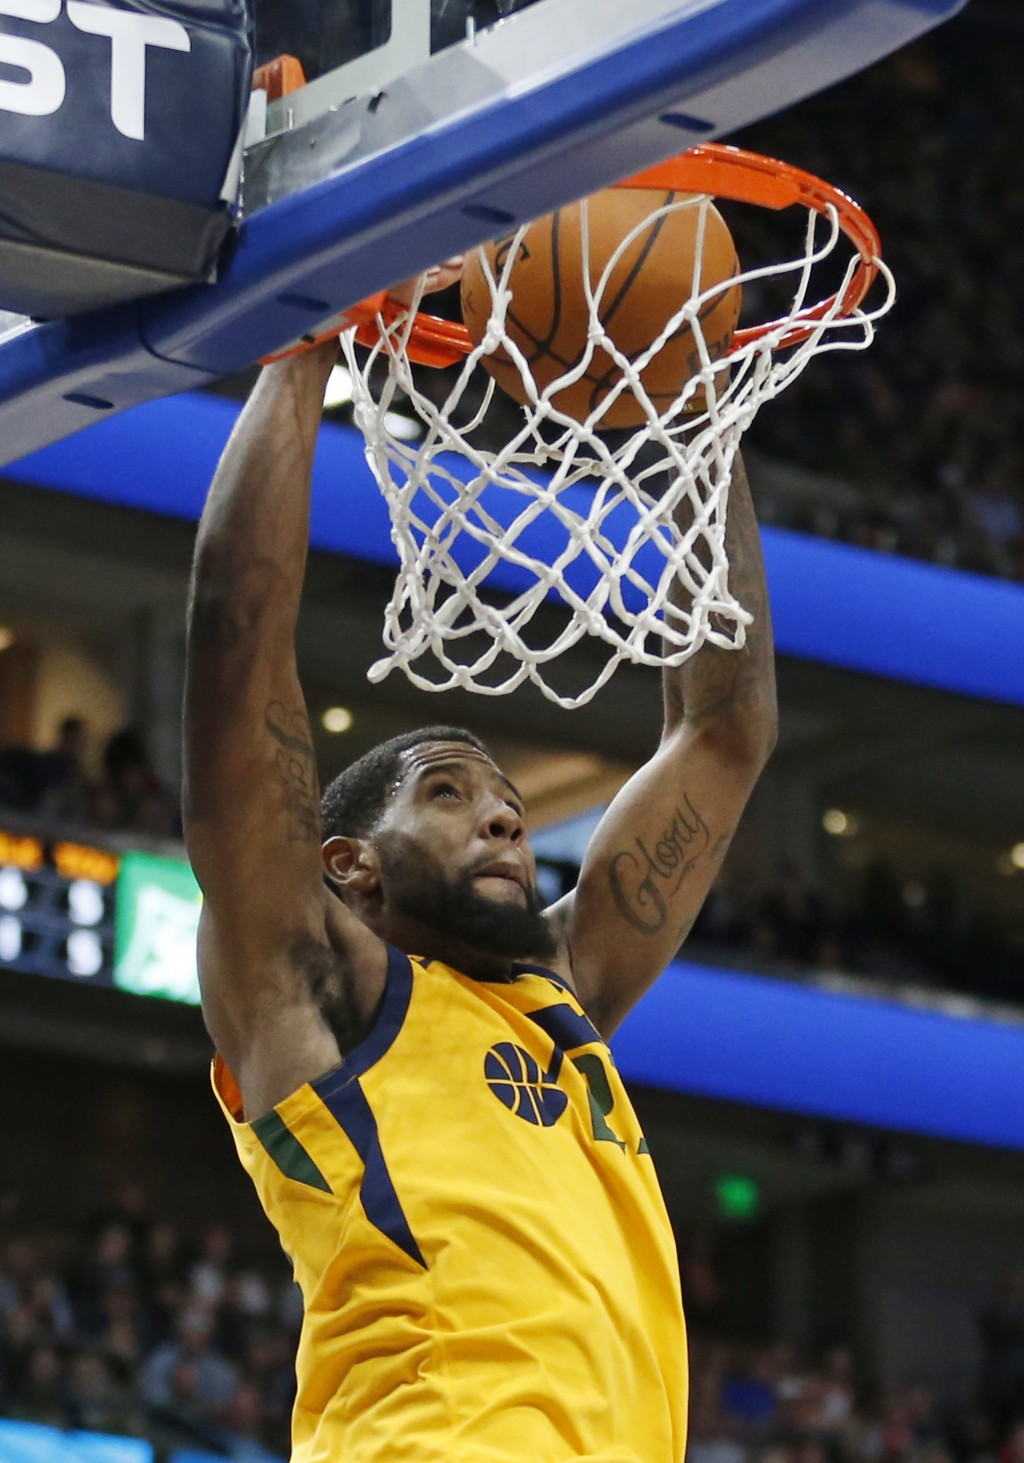 Utah Jazz forward Royce O'Neale dunks the ball against the Phoenix Suns in the first half during an NBA basketball game Wednesday, Feb. 14, 2018, in S